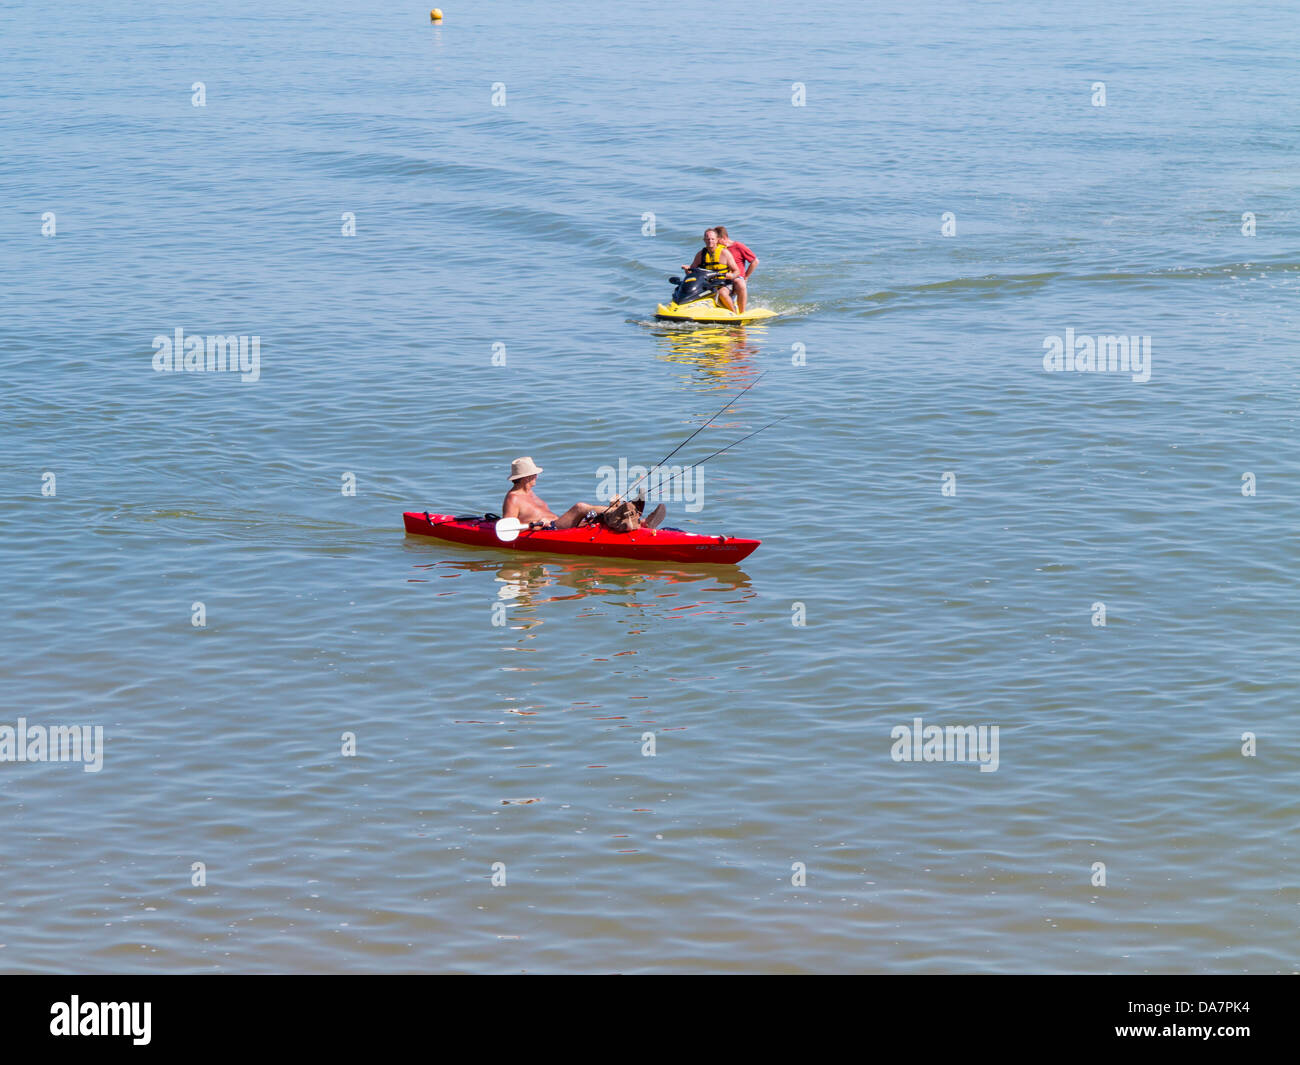 Canoeist and jet skier at Sidmouth, Devon, England - Stock Image